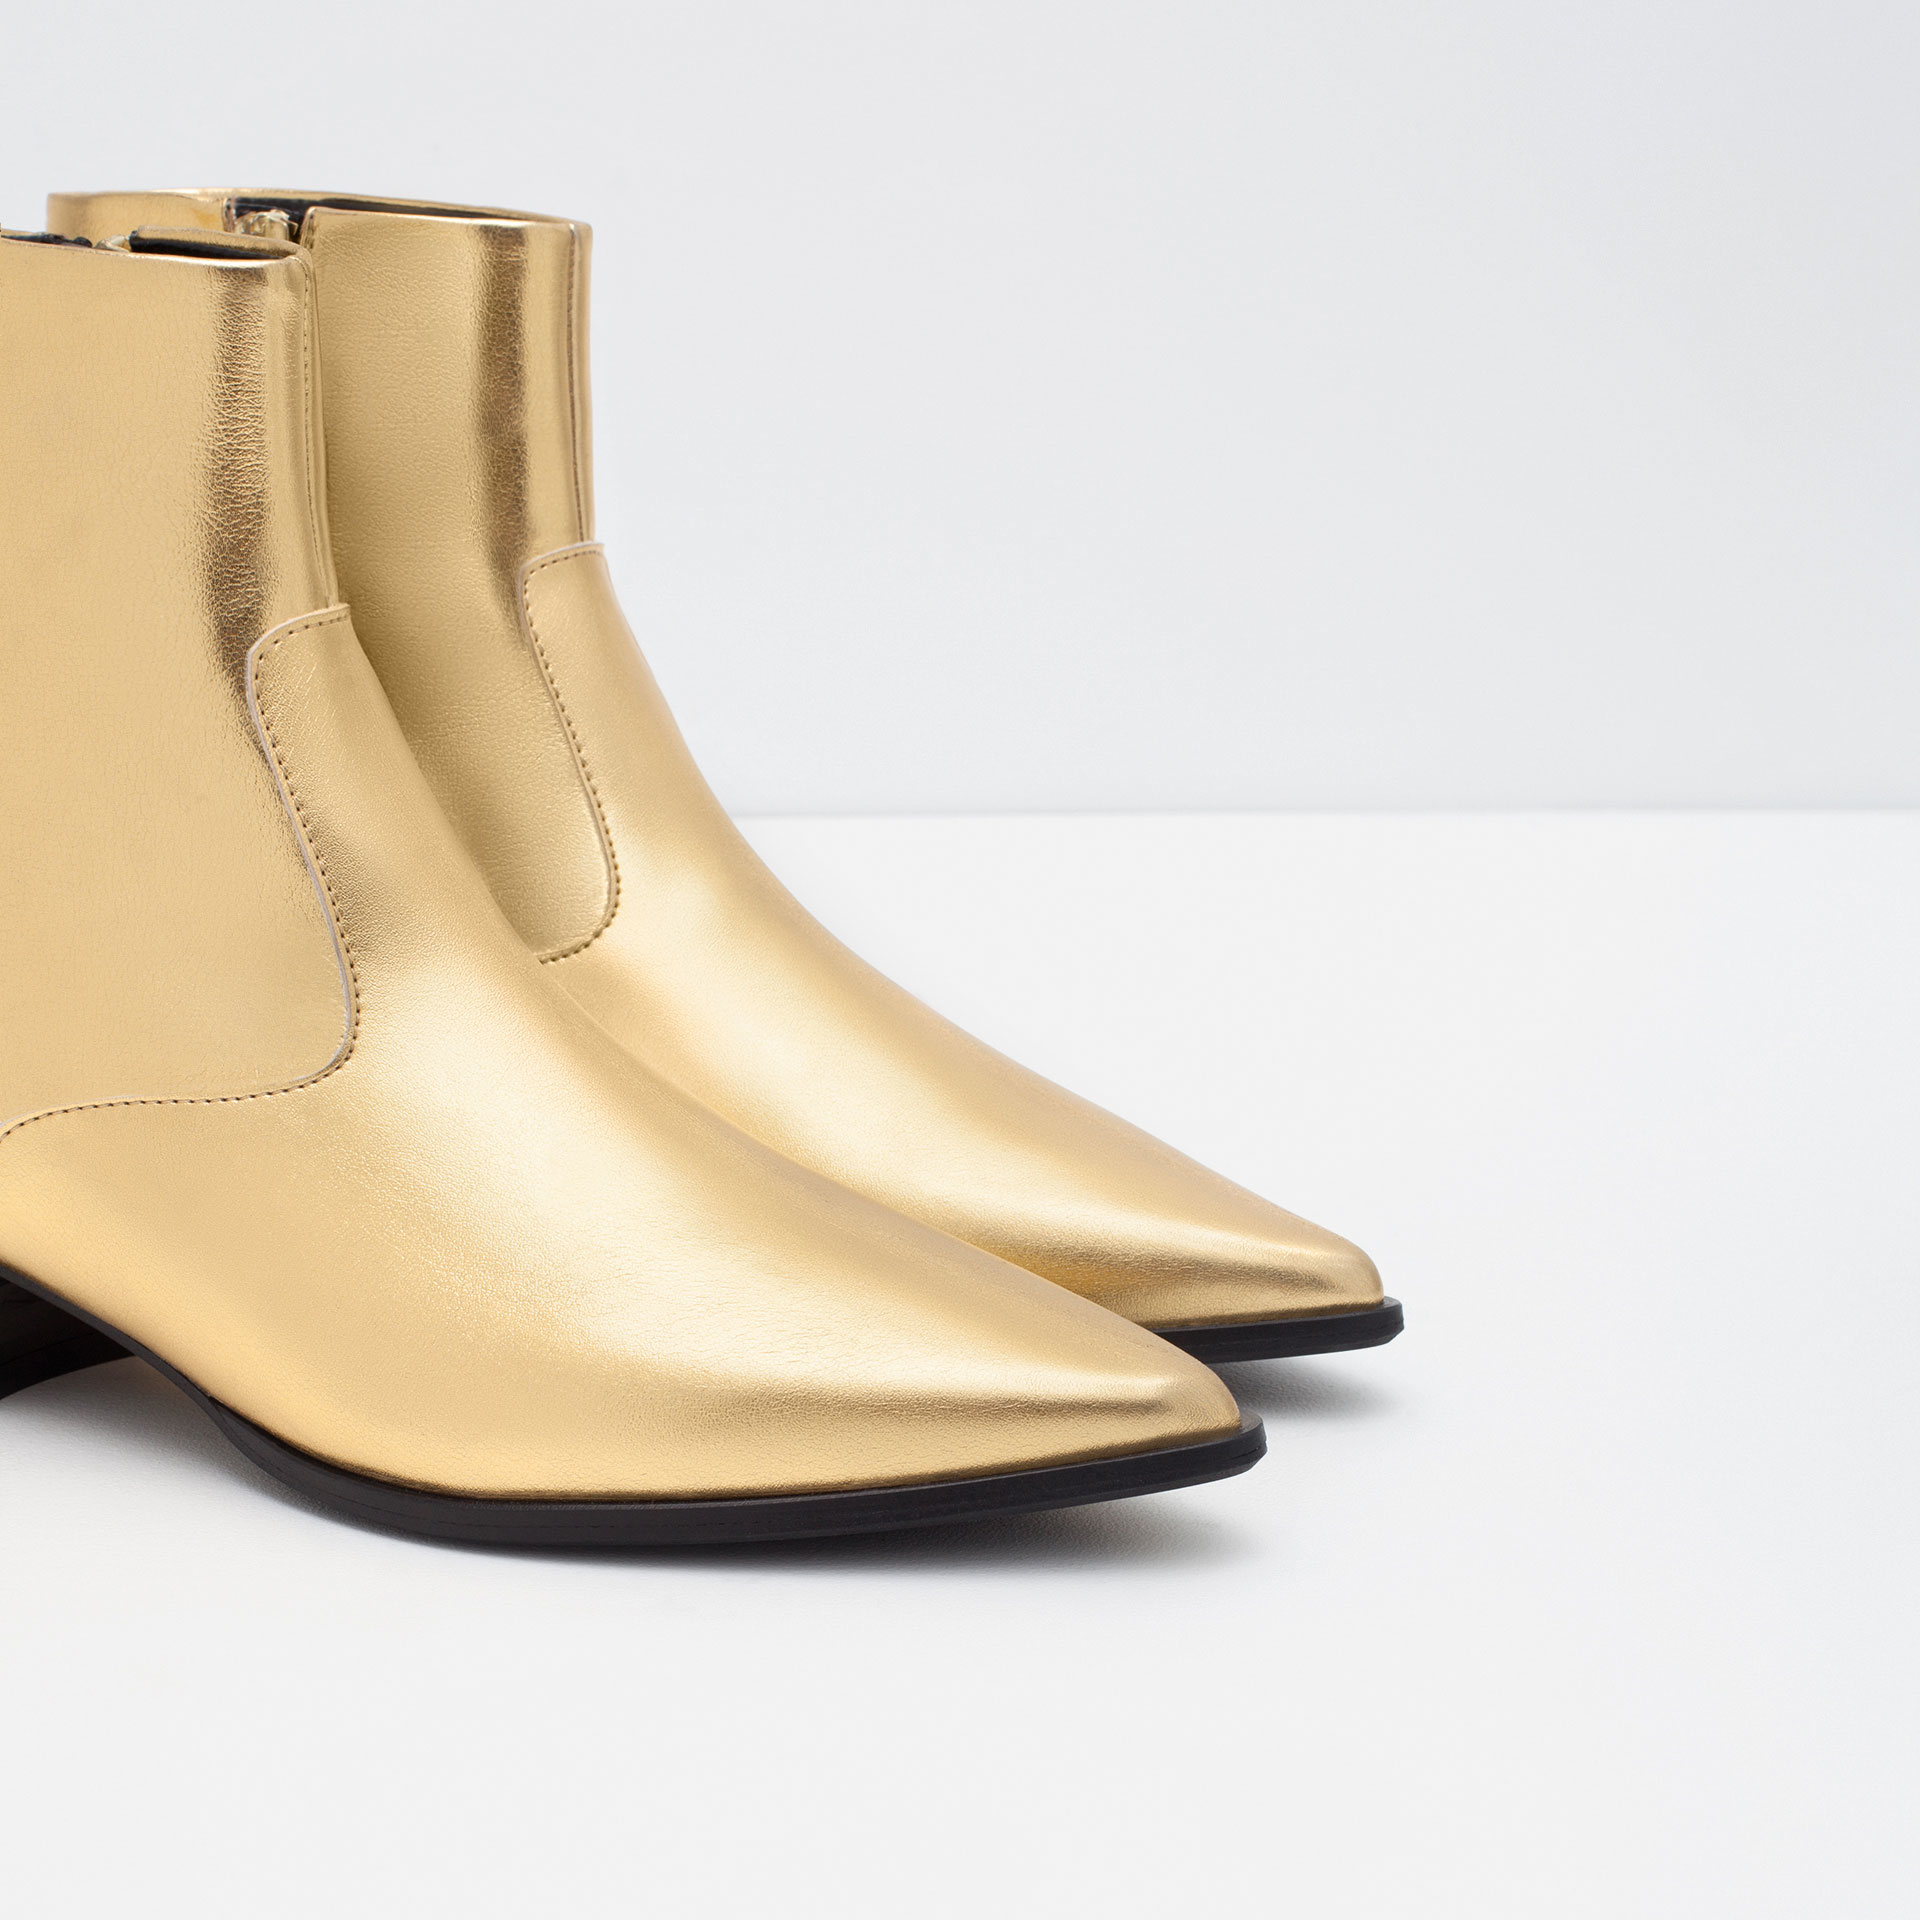 Gold Ankle Boots 5TUcGgEu